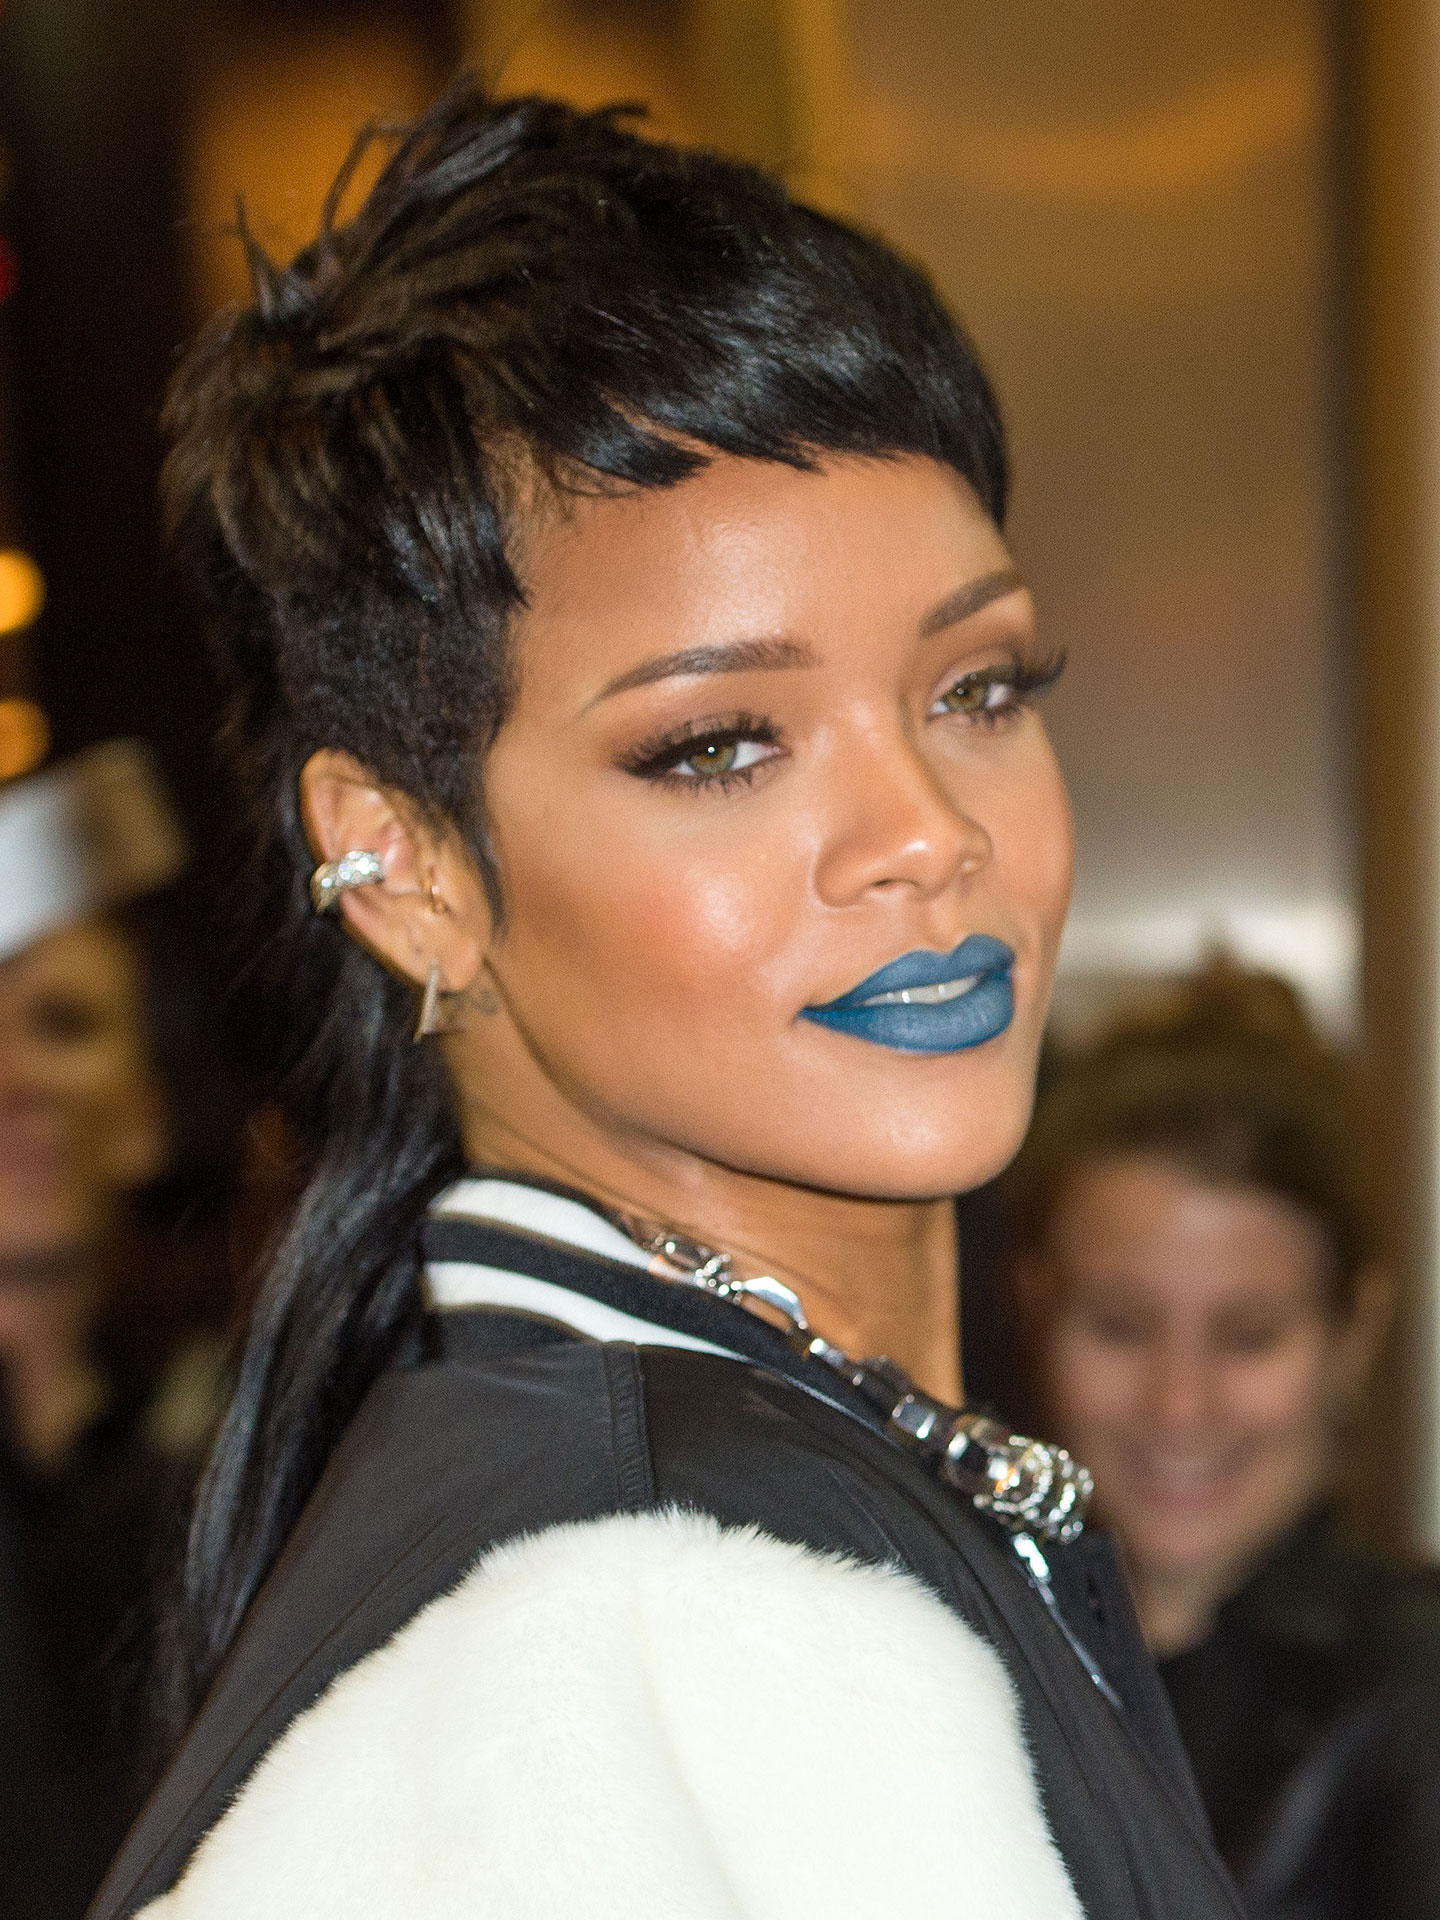 Rihanna blue lipstick rihanna ss14 river island collection - Coupe courte femme black ...